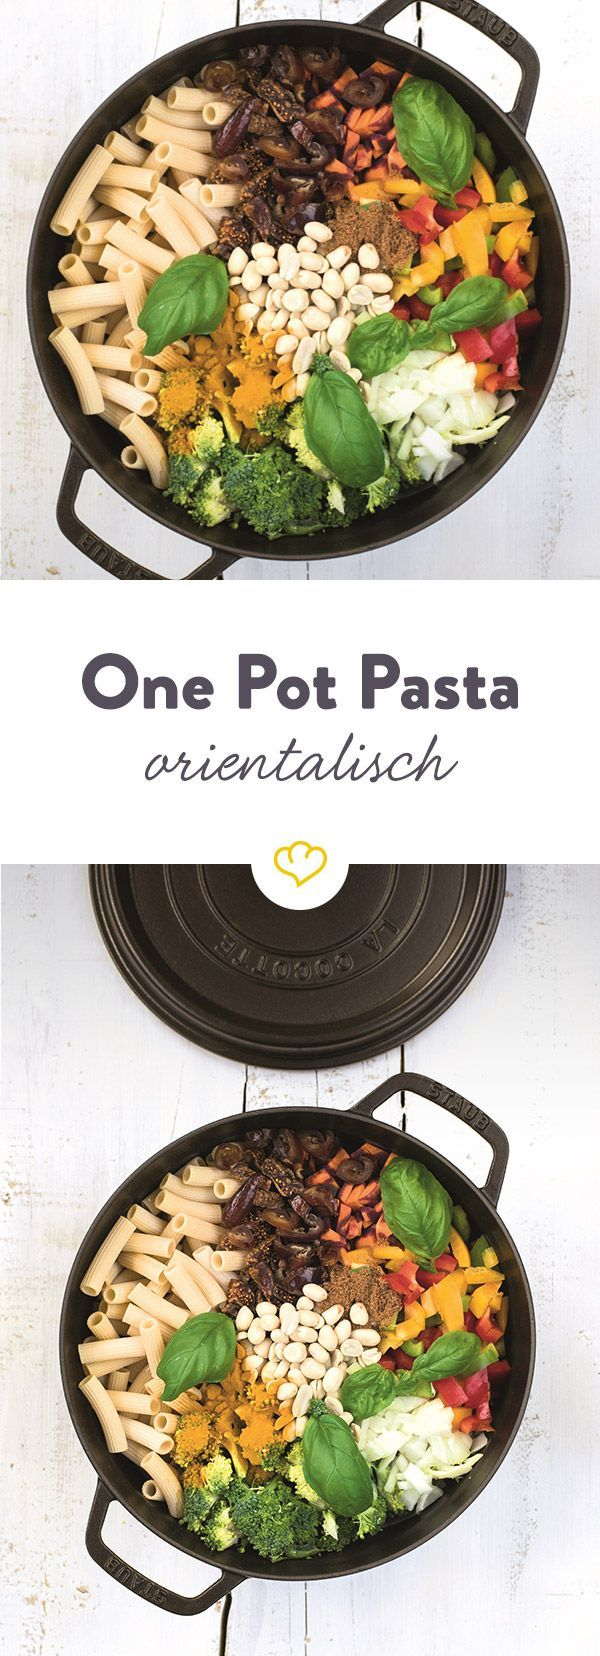 16 best one pot rezepte images on pinterest one pot pasta cooking recipes and fungi. Black Bedroom Furniture Sets. Home Design Ideas